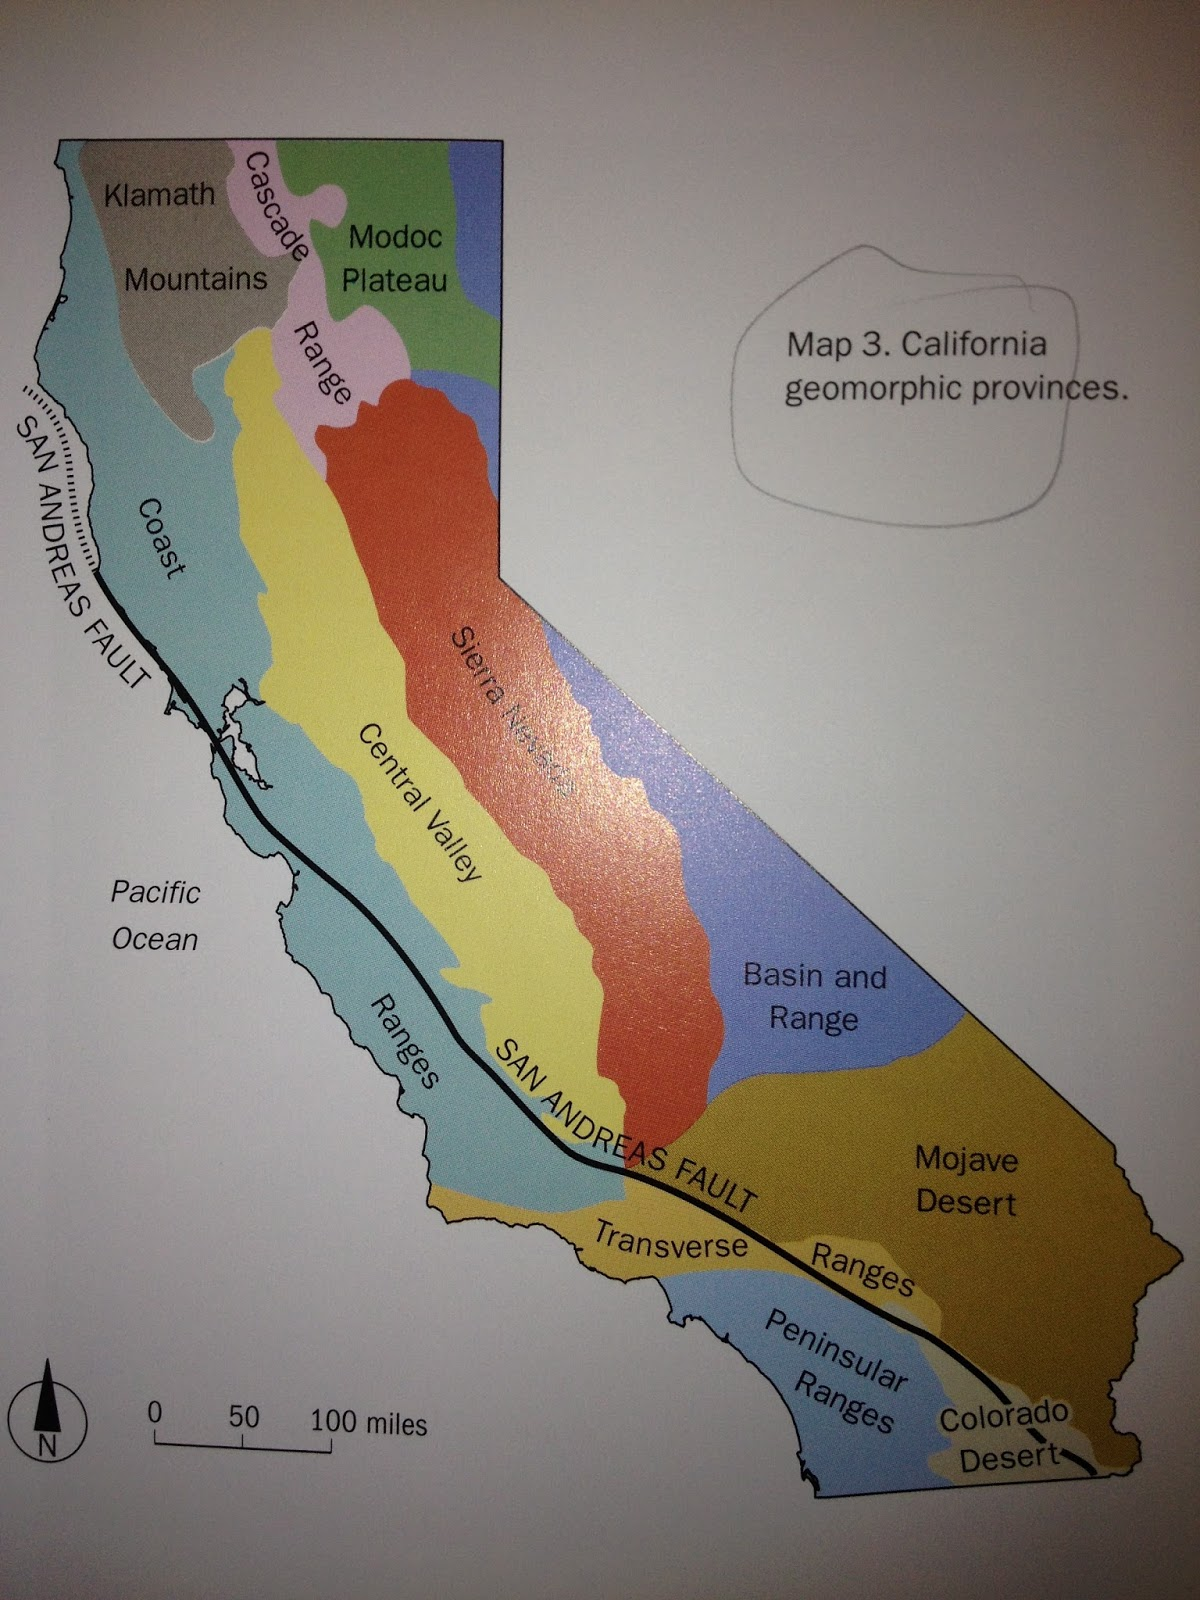 image 1 the color coded 11 physiographic provinces of california the san andreas fault passes exclusively through the coast ranges in northern ca